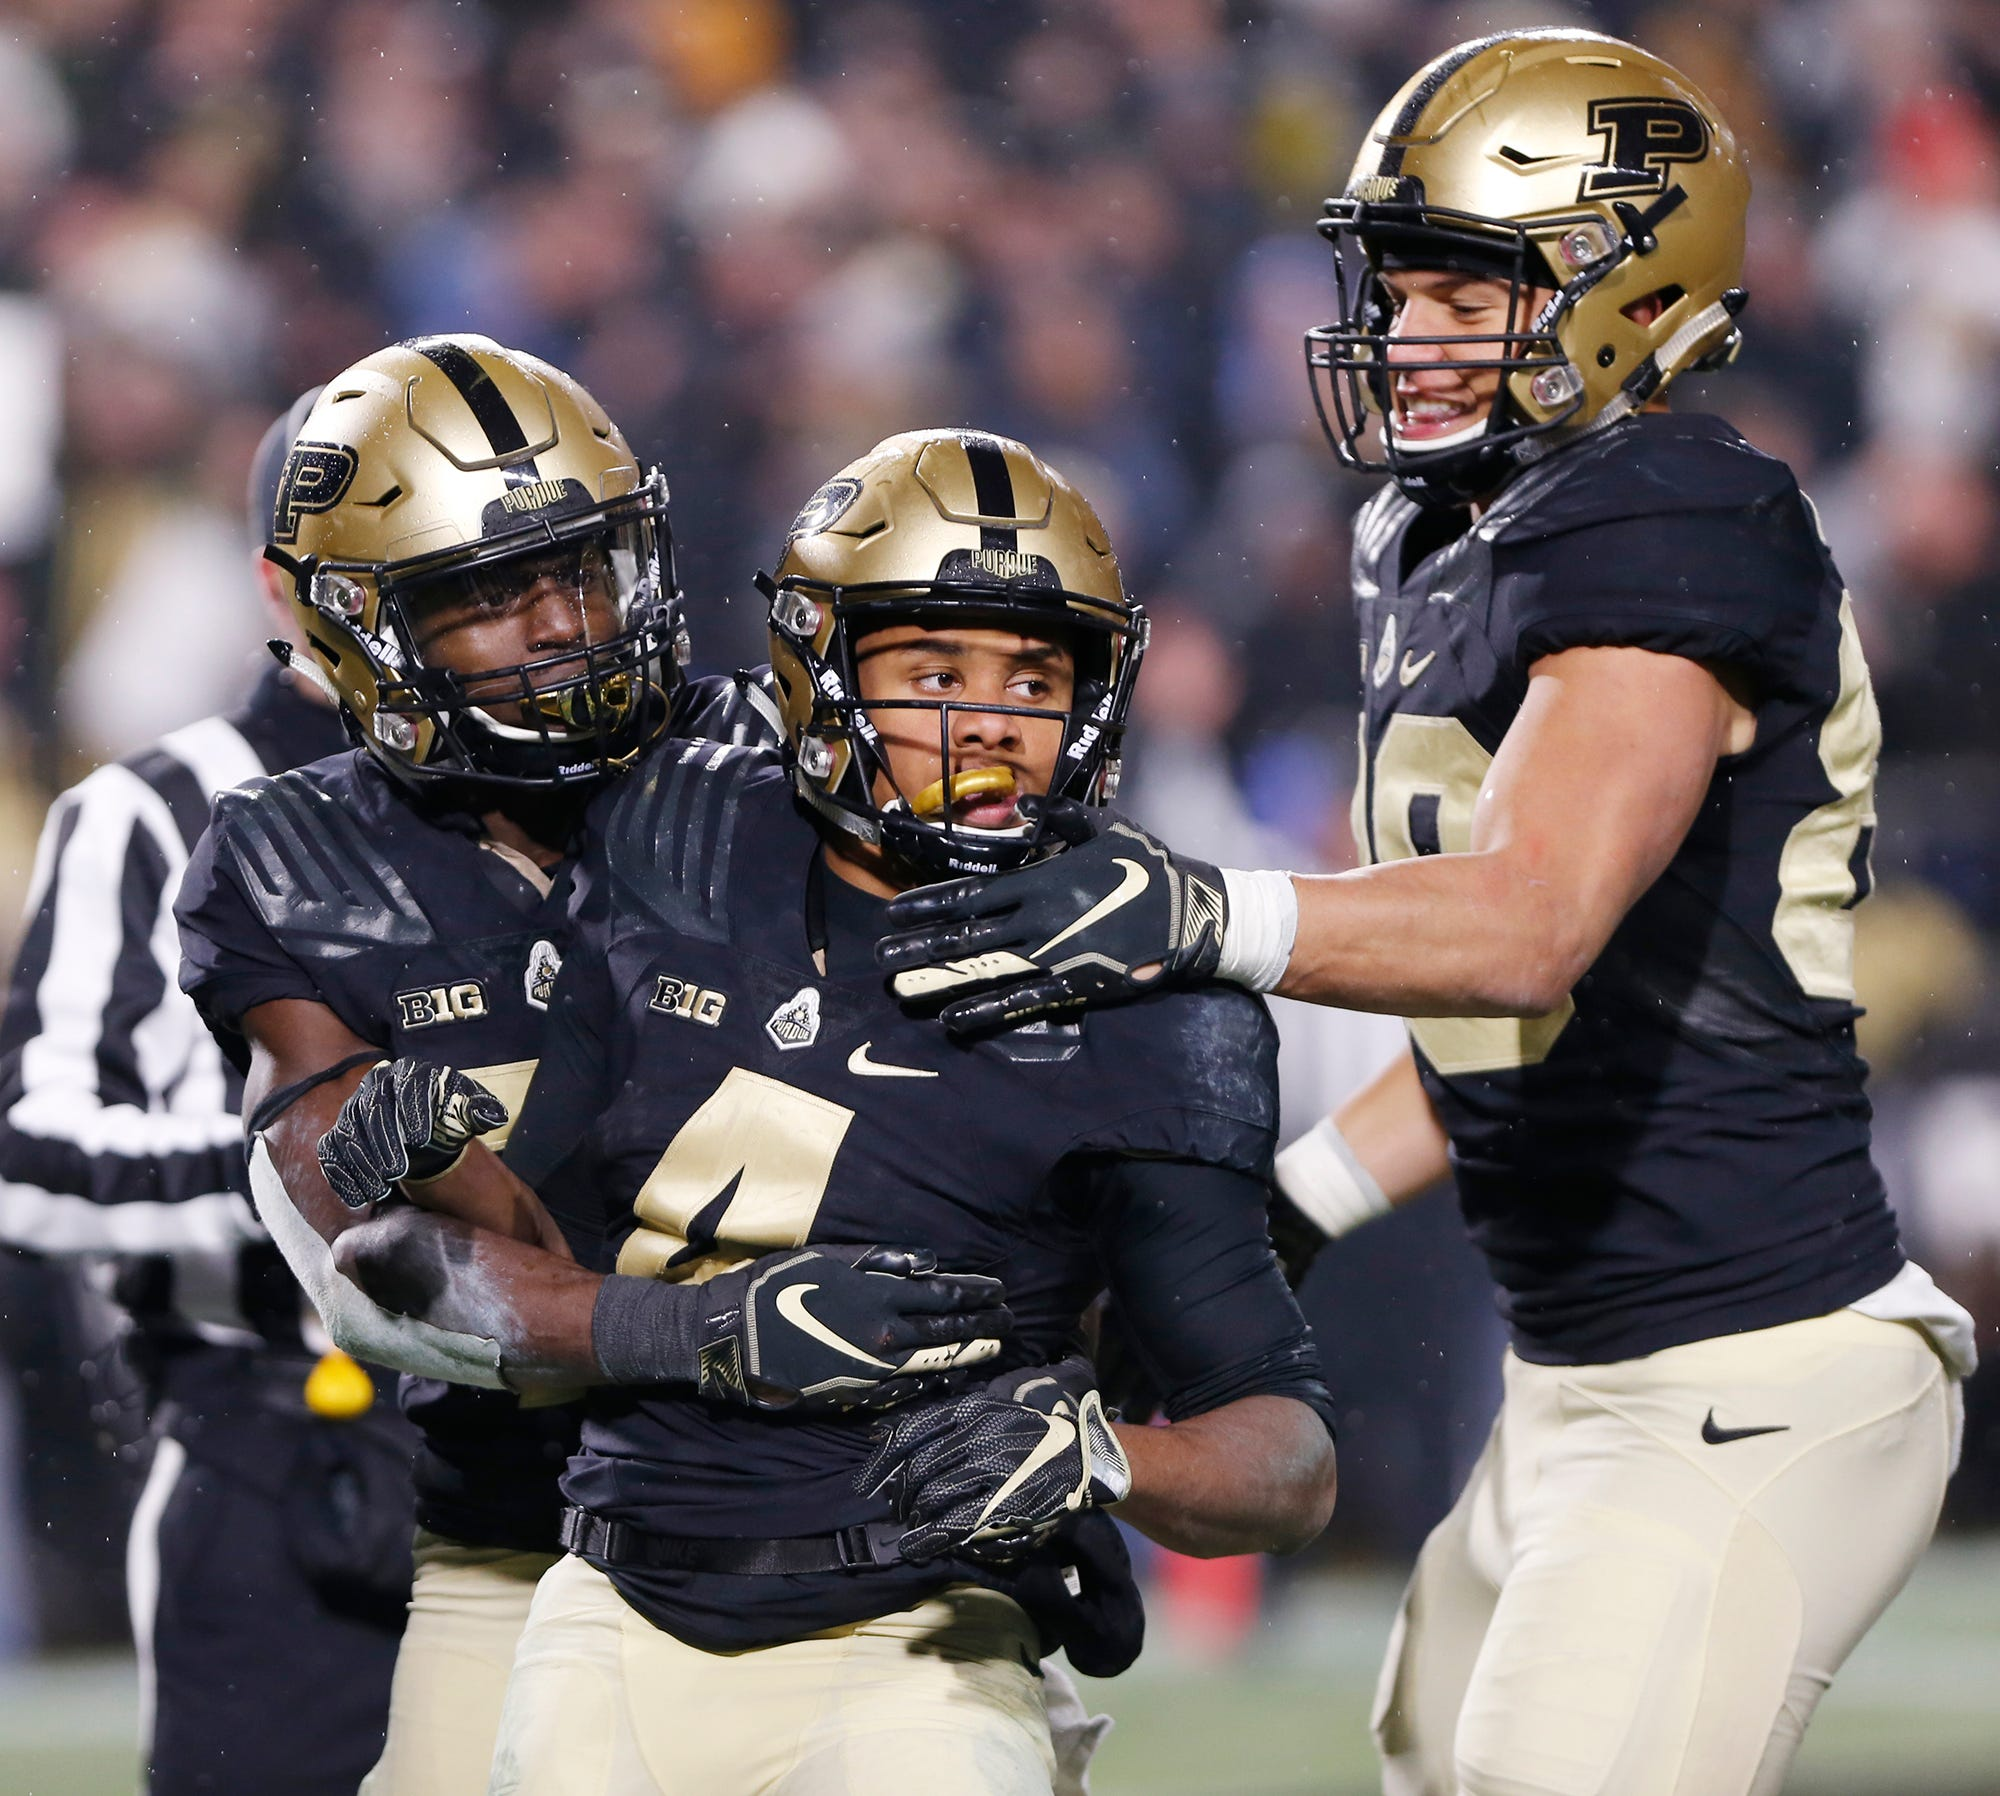 Rondale Moore, center, of Purdue celebrates with teammates after his touchdown in the first overtime period against Wisconsin Saturday, November 17, 2018, at Ross-Ade Stadium. Purdue fell to Wisconsin 47-44 3OT.